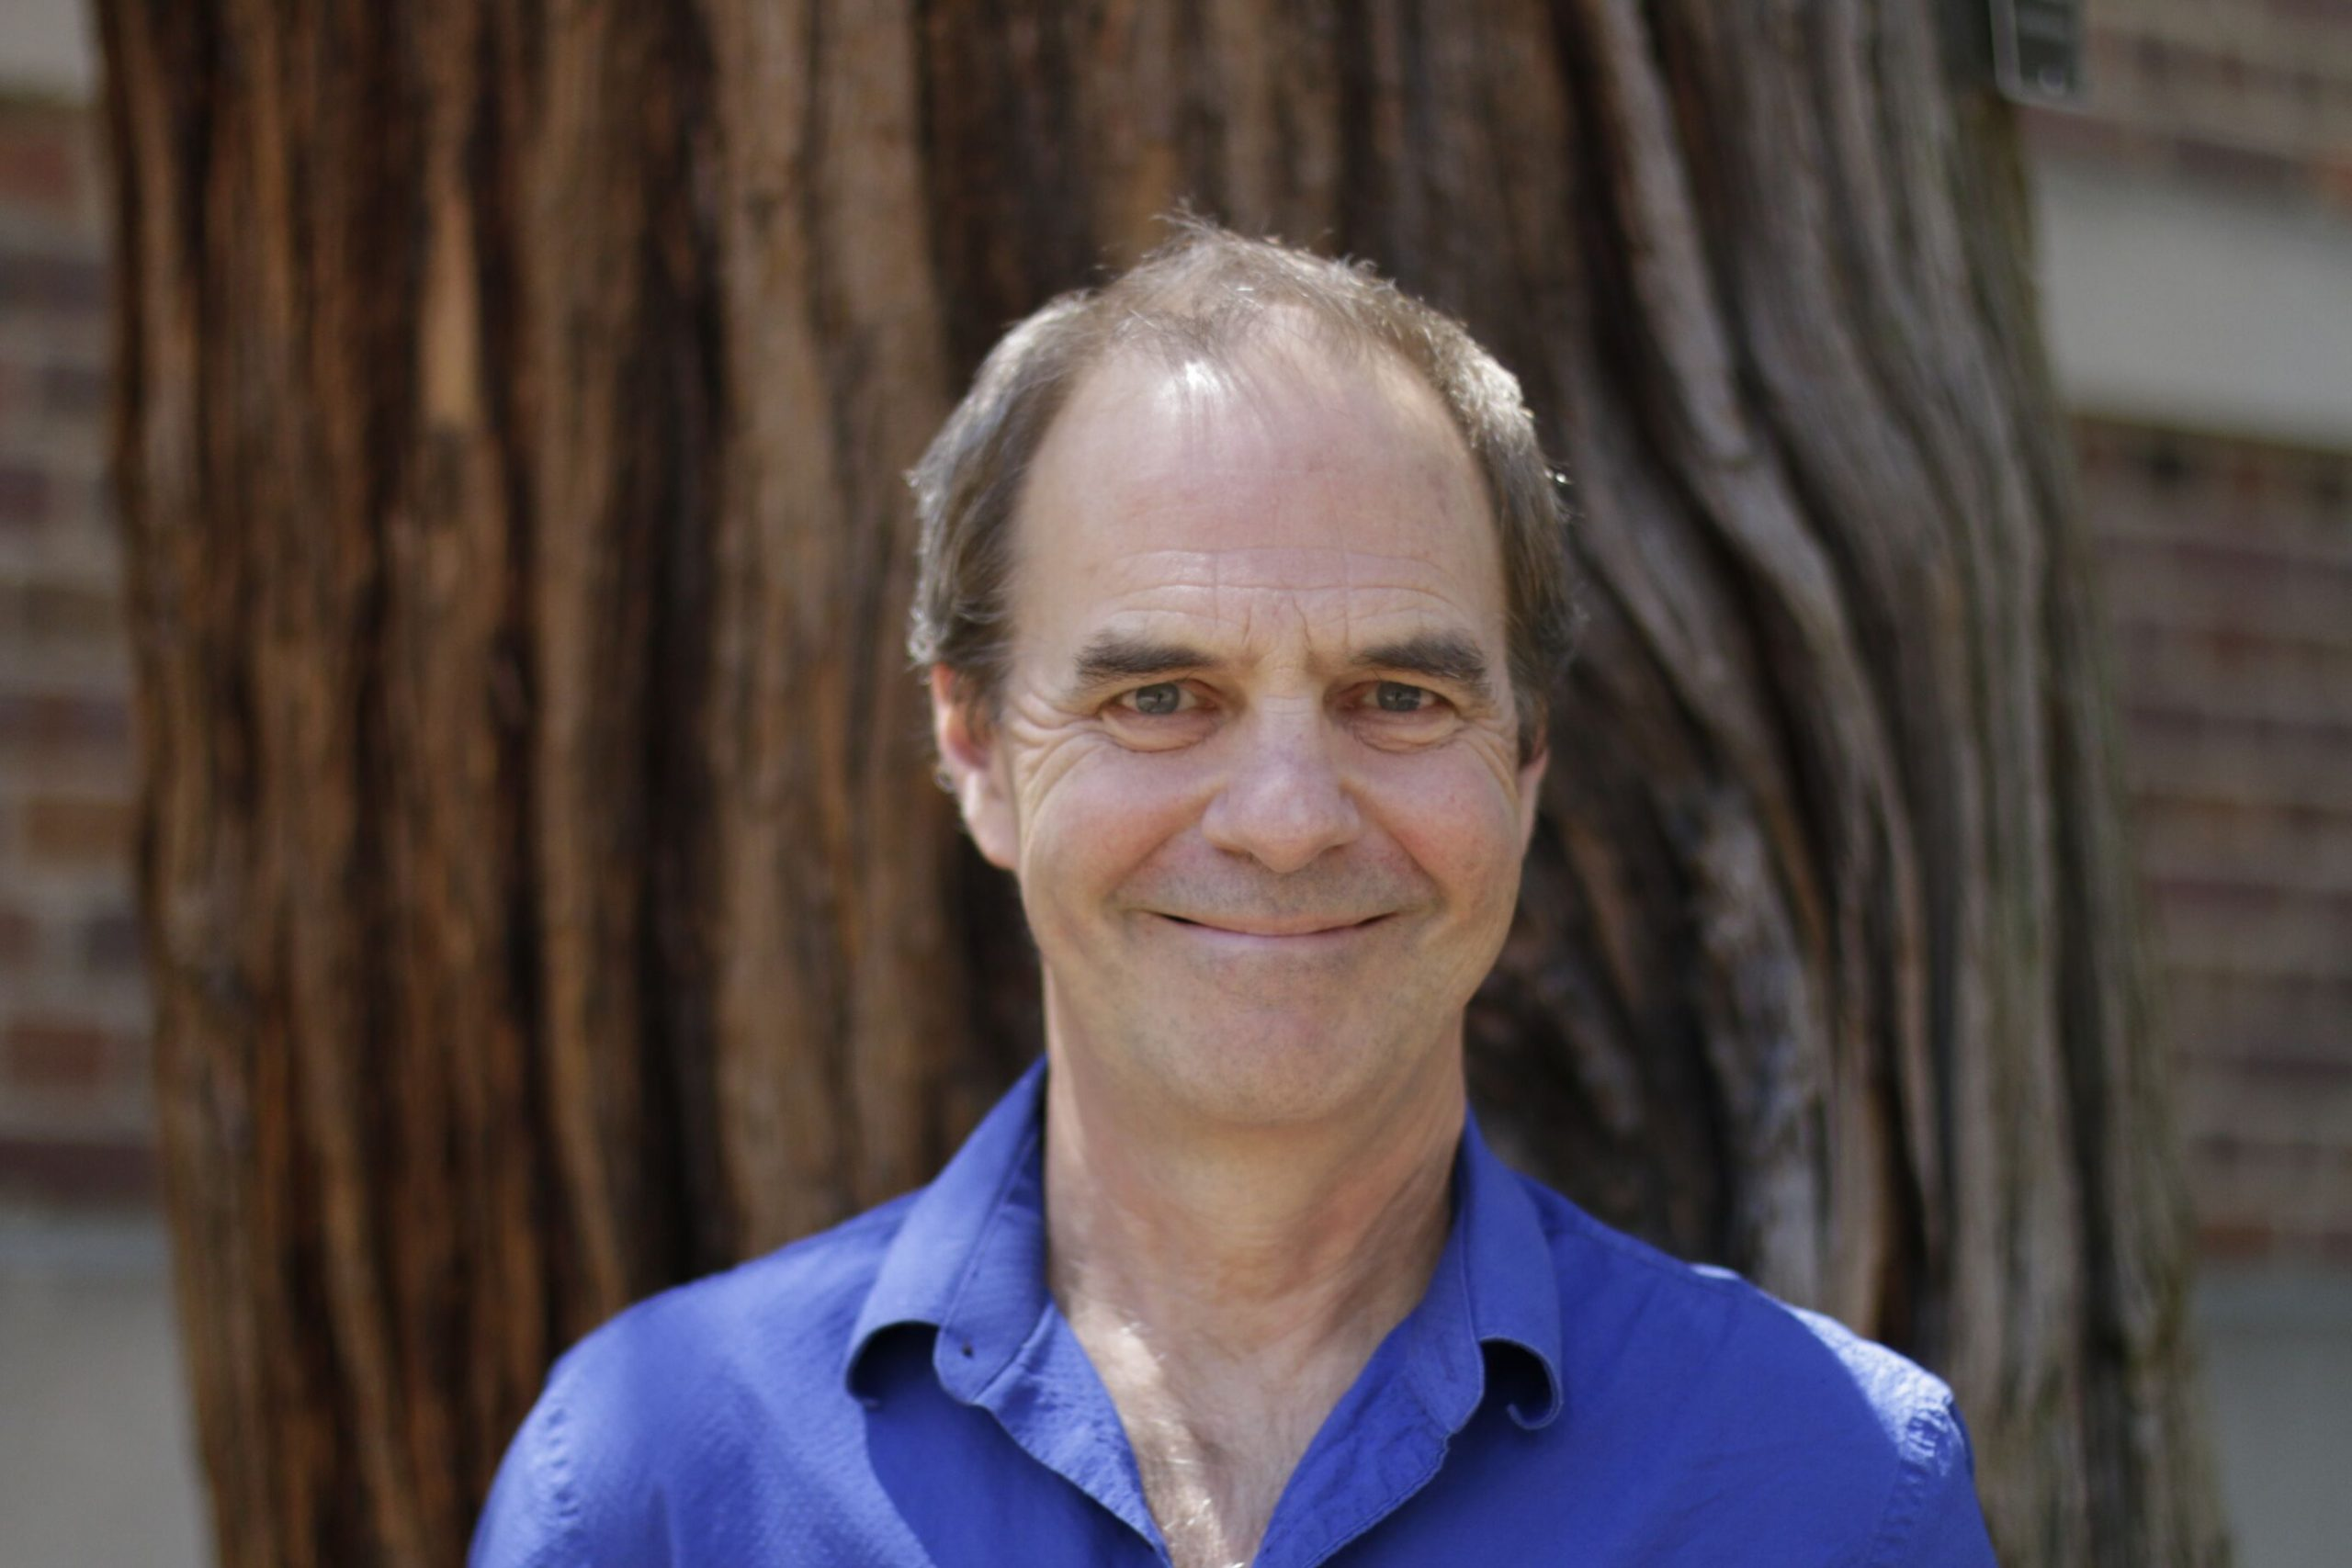 Headshot of Dan Anderson, man in a blue shirt in from of a tree